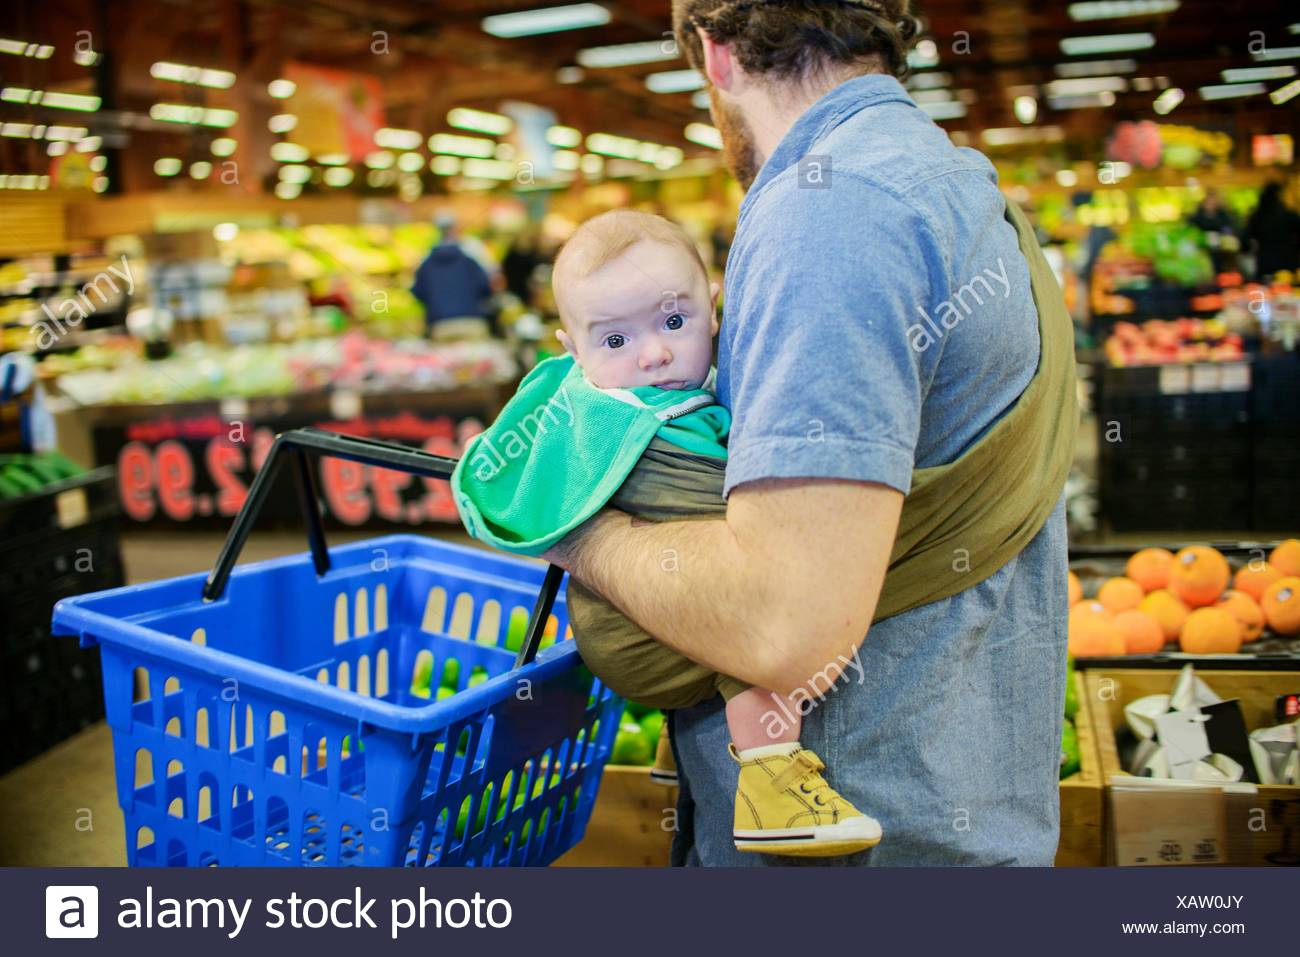 Father holding baby son and shopping basket in supermarket - Stock Image